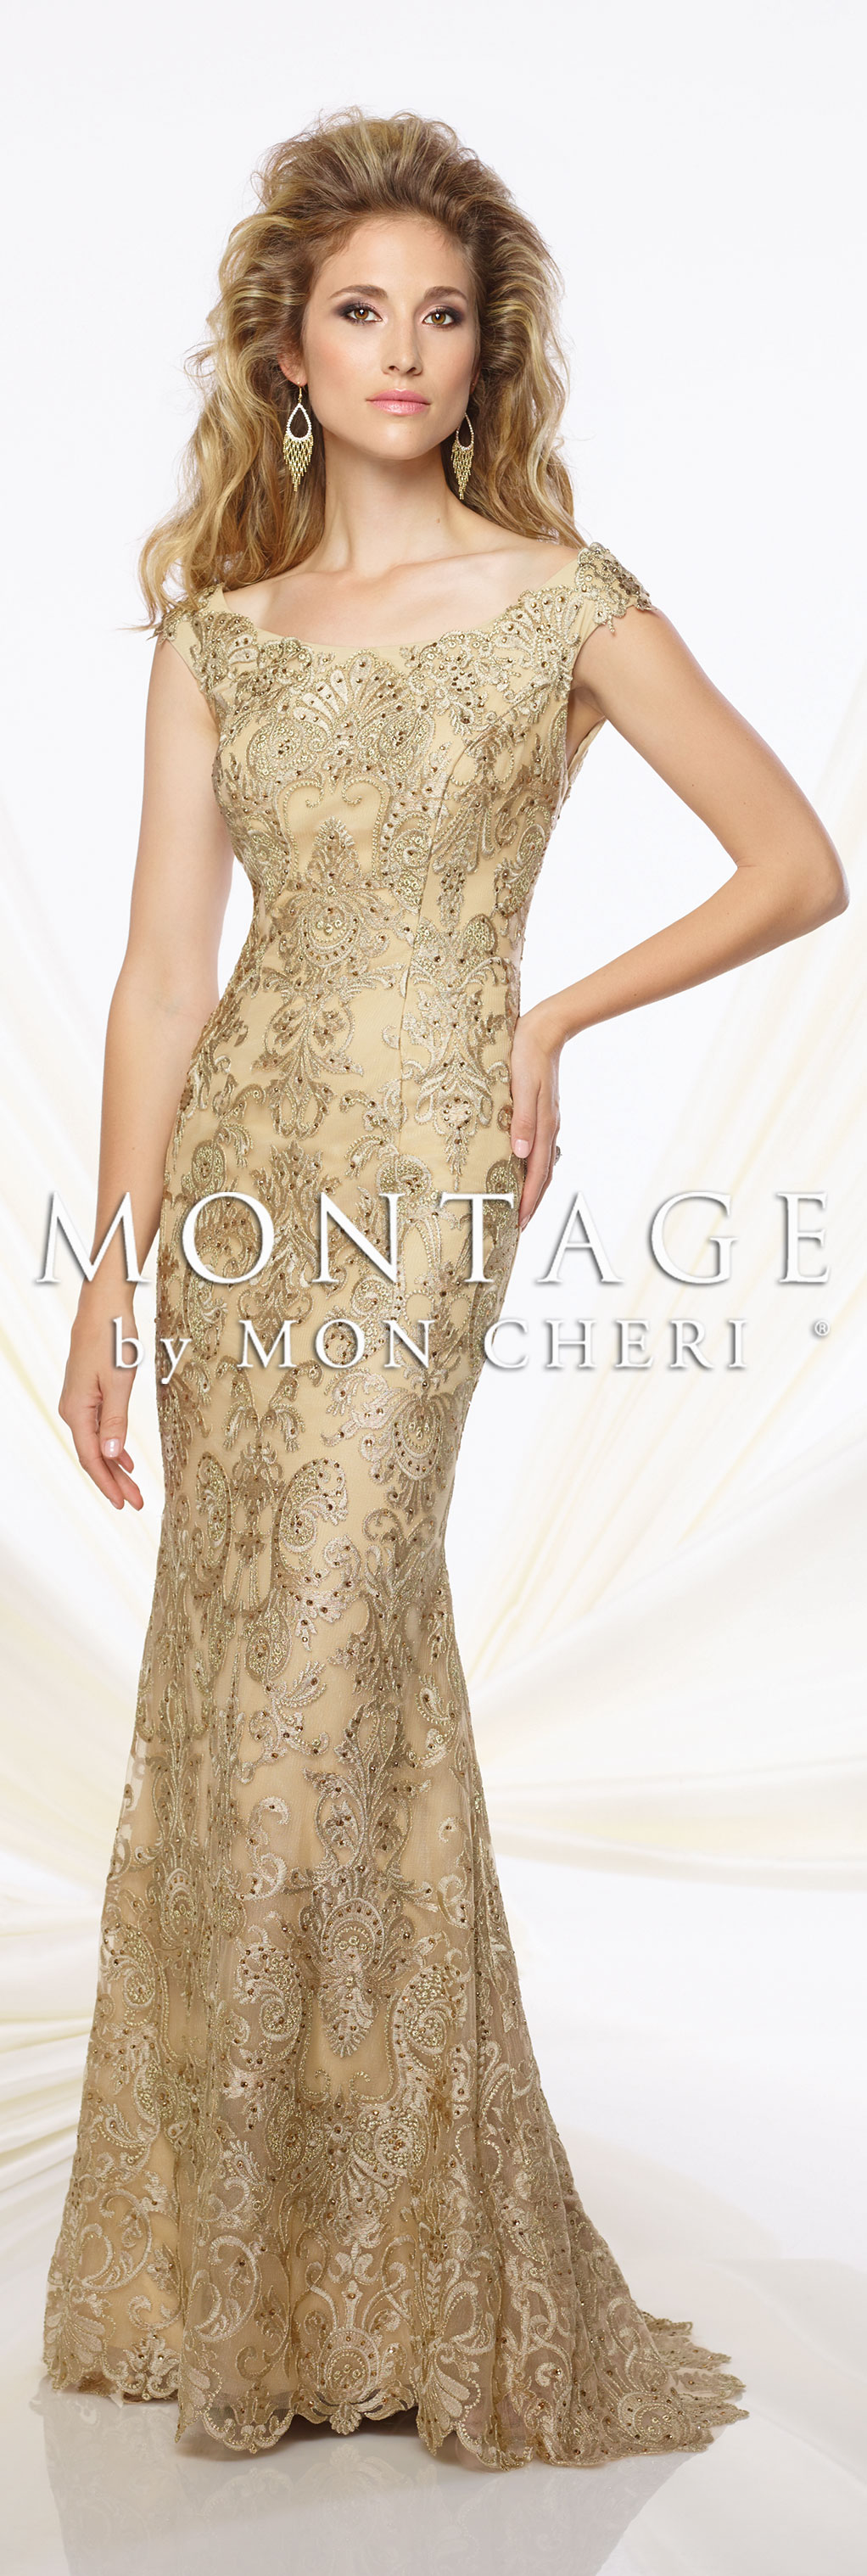 Sophisticated Mother of the Bride Dresses 2018 by Mon Cheri | Mother ...